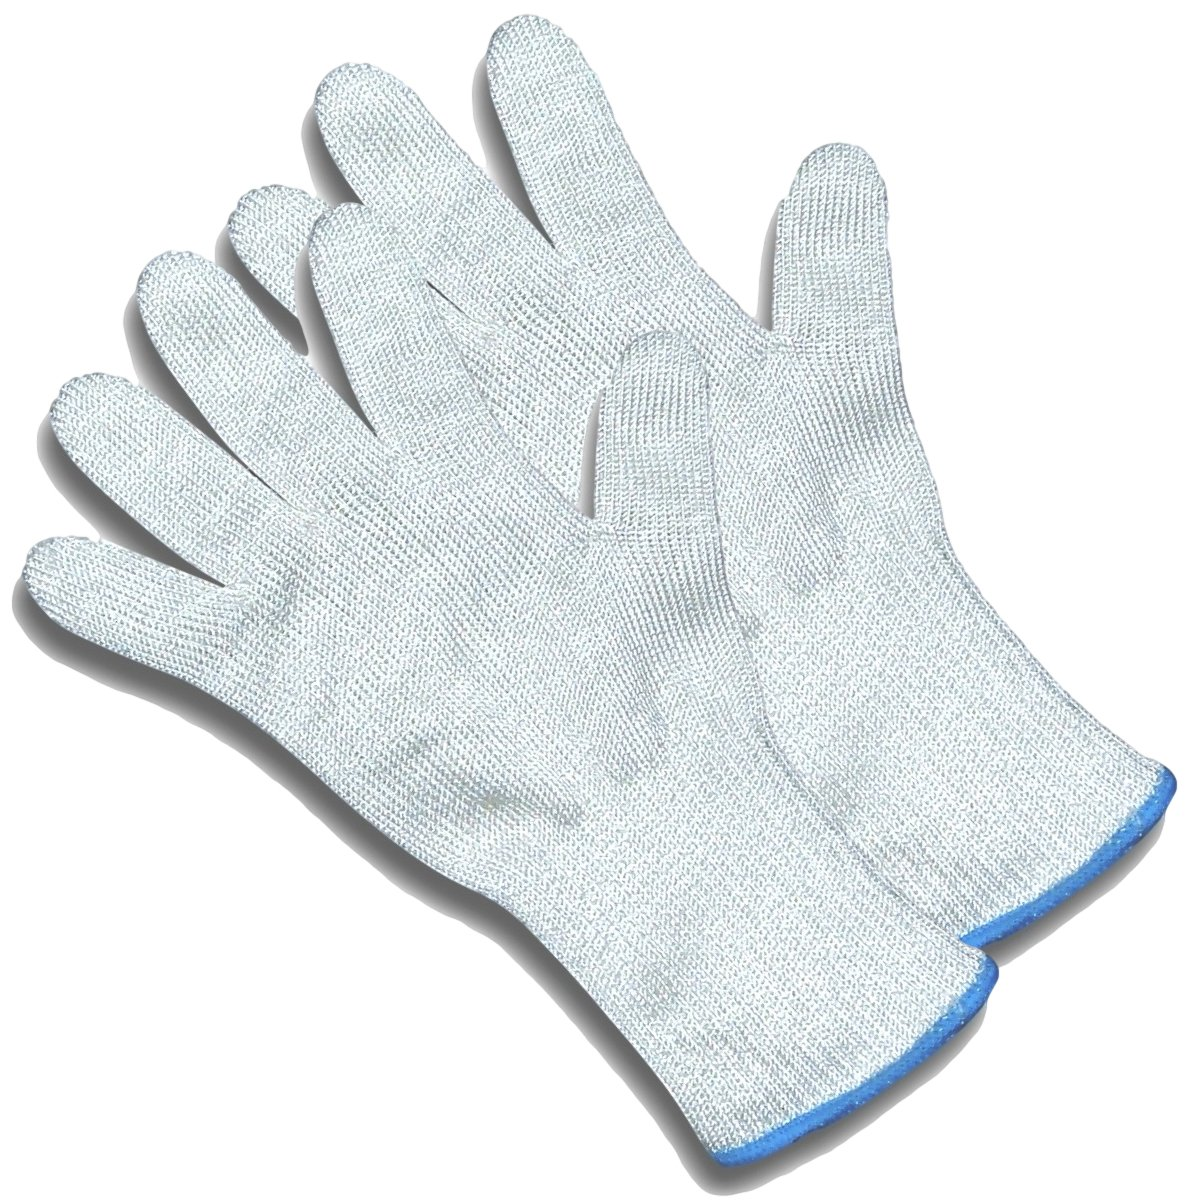 ChefsGrade Cut Resistant Safety Gloves - Protection From Knives, Mandoline and Graters - Soft Flexible with Stainless Steel Wire - Two Gloves